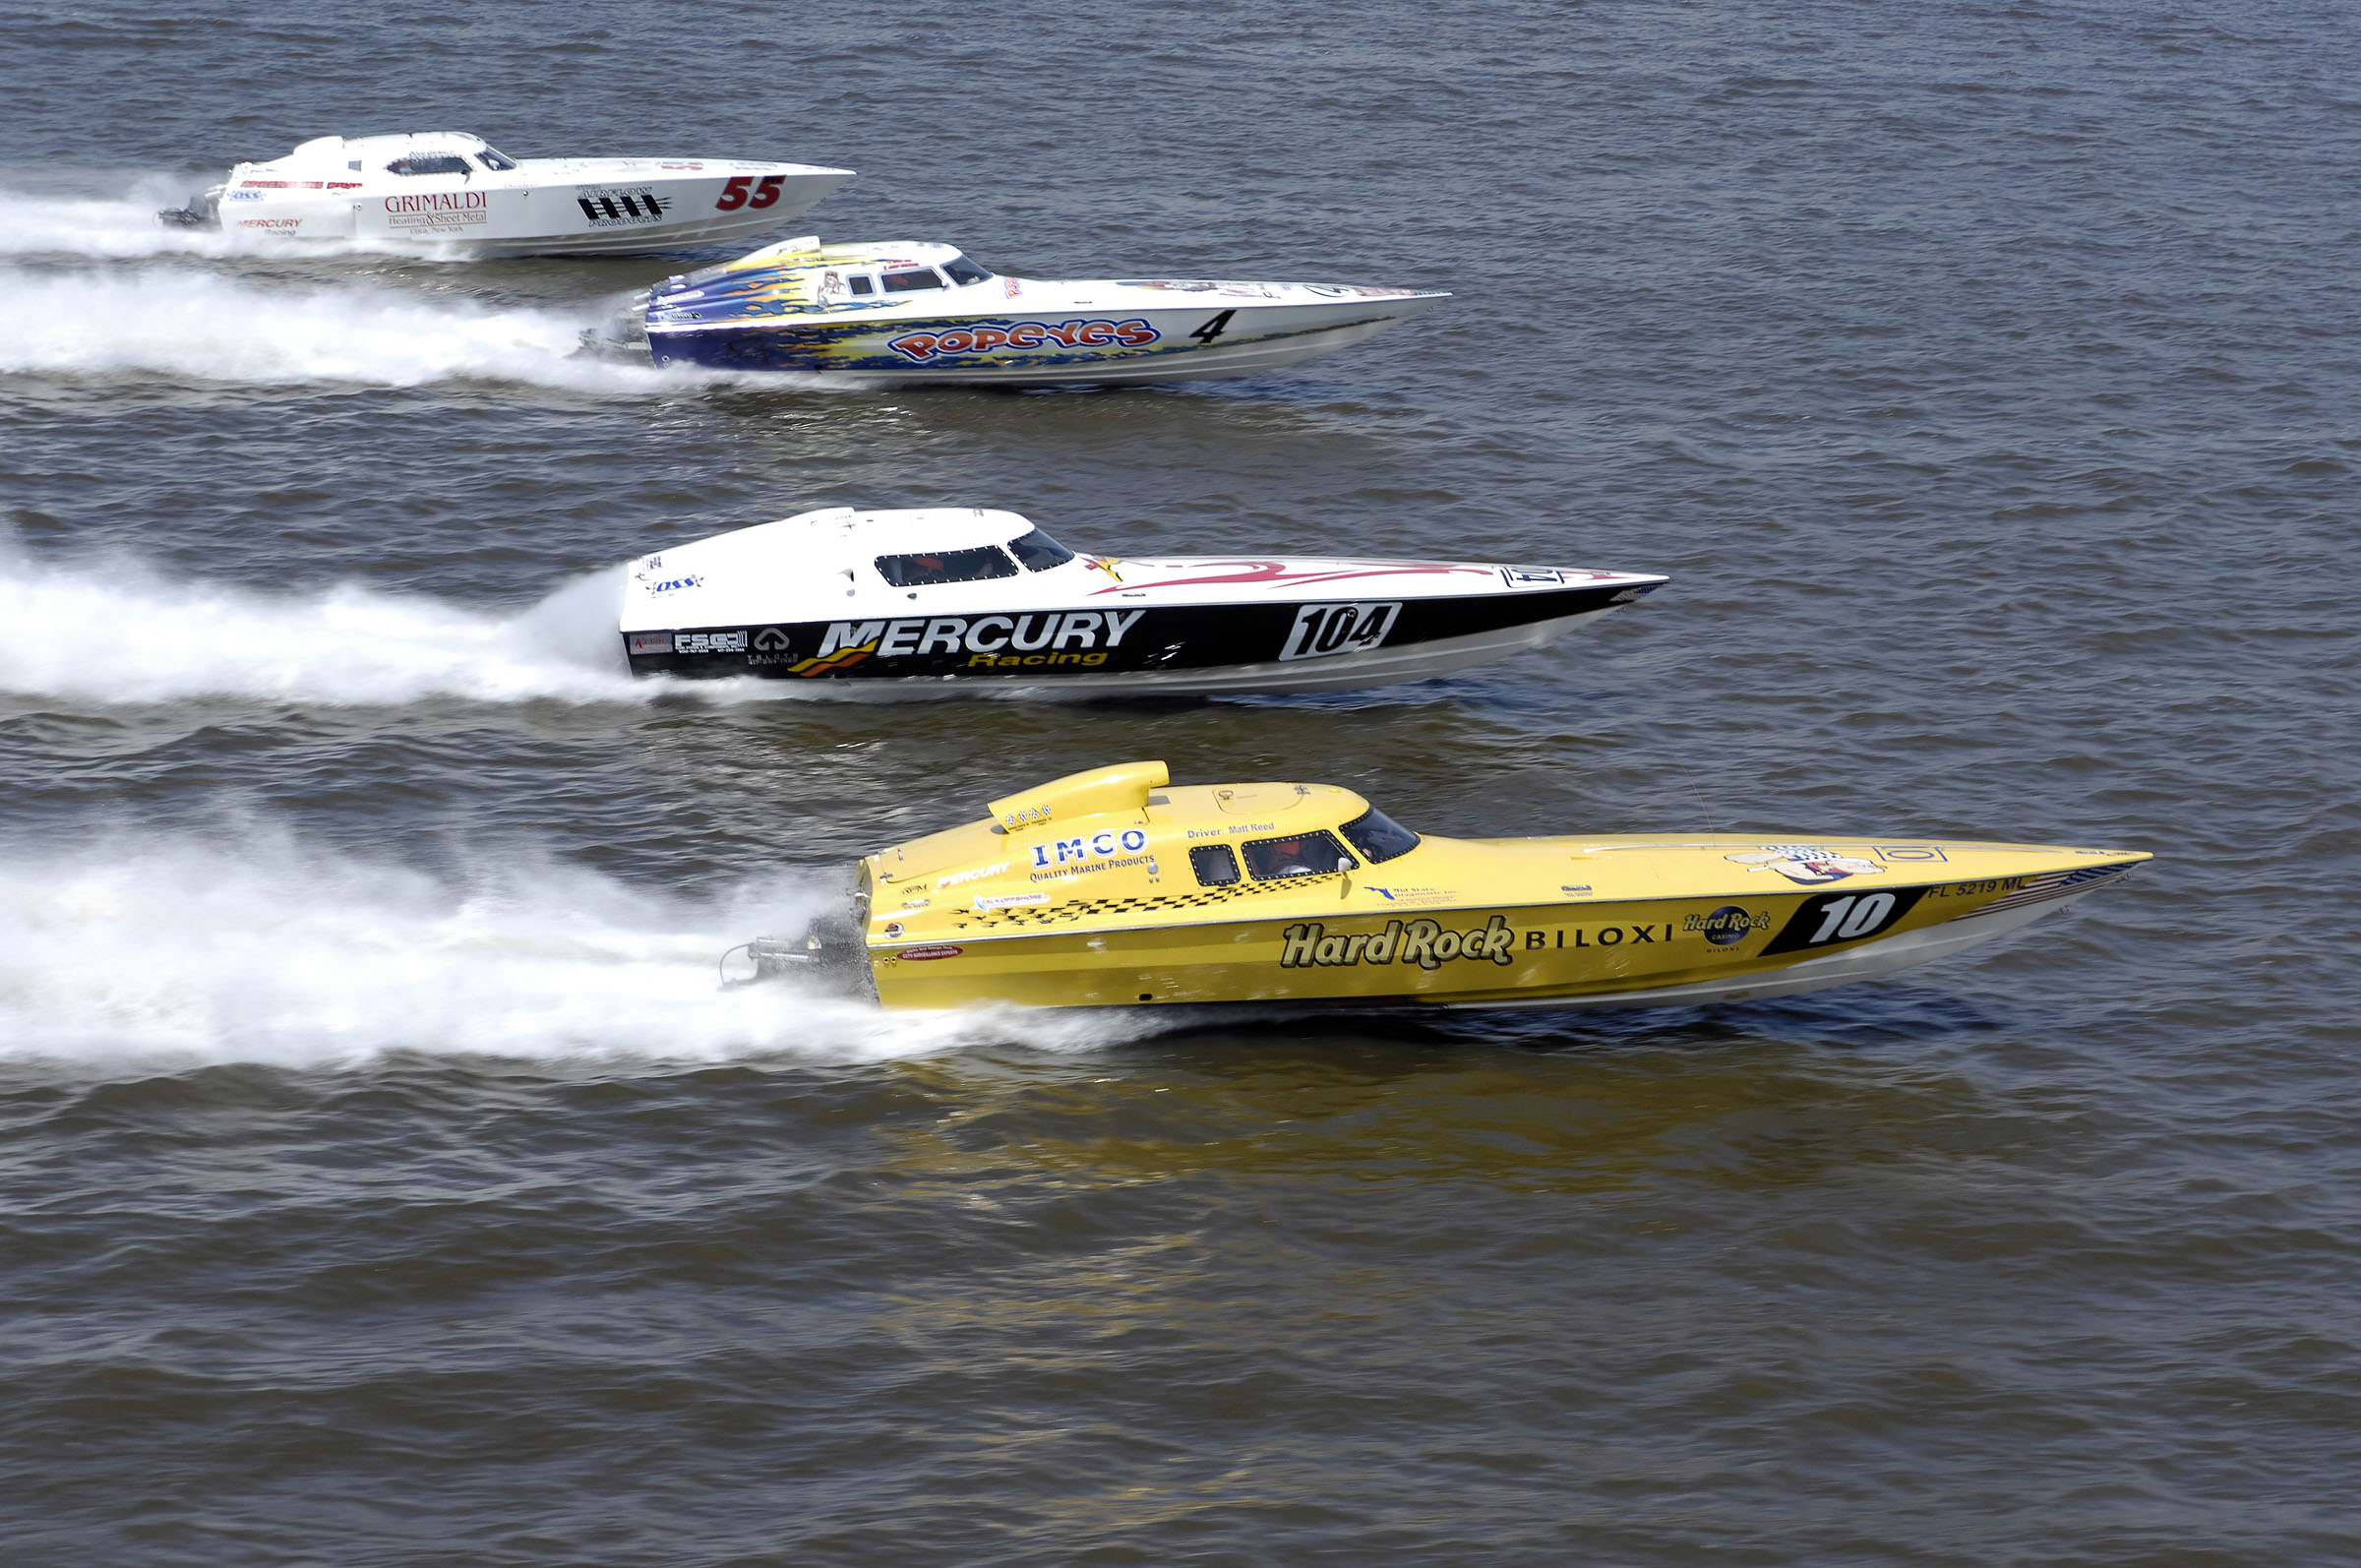 Images of Boat Racing | 2400x1594